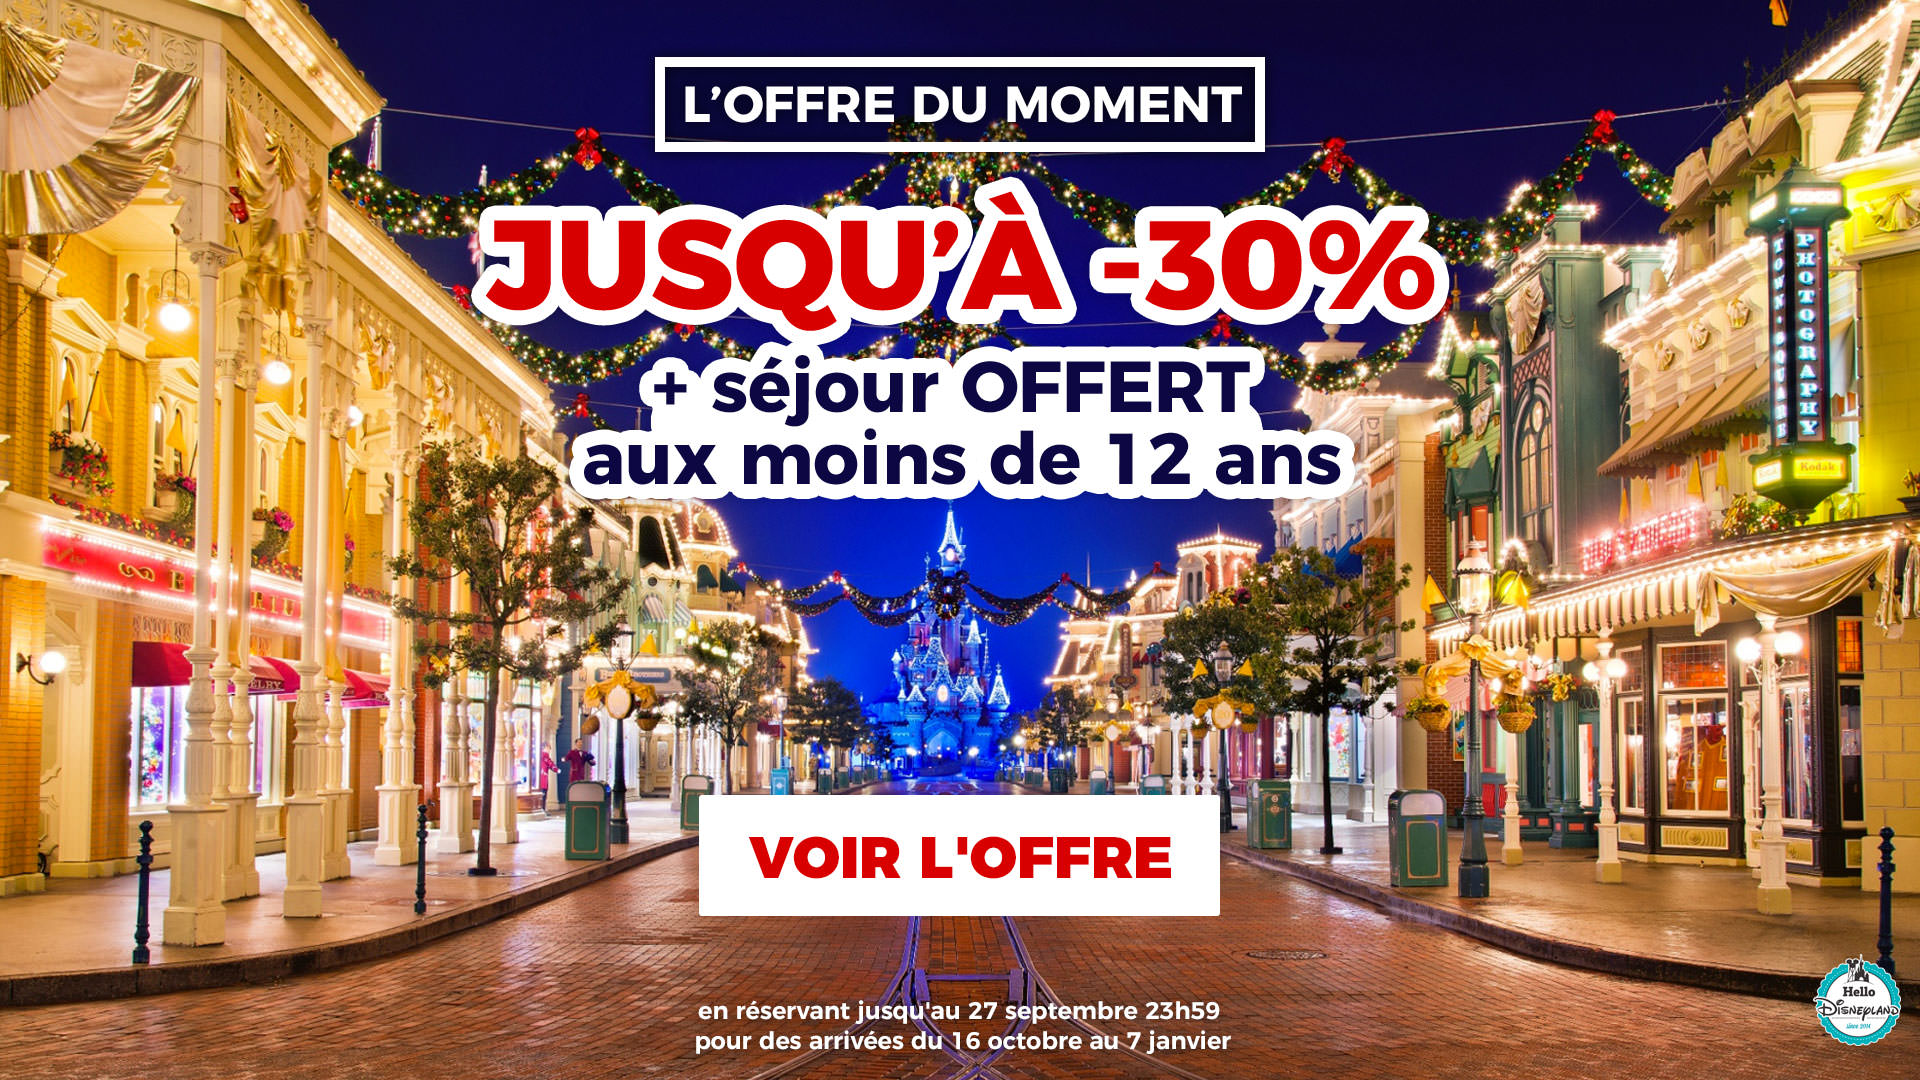 Disneyland paris discount coupons